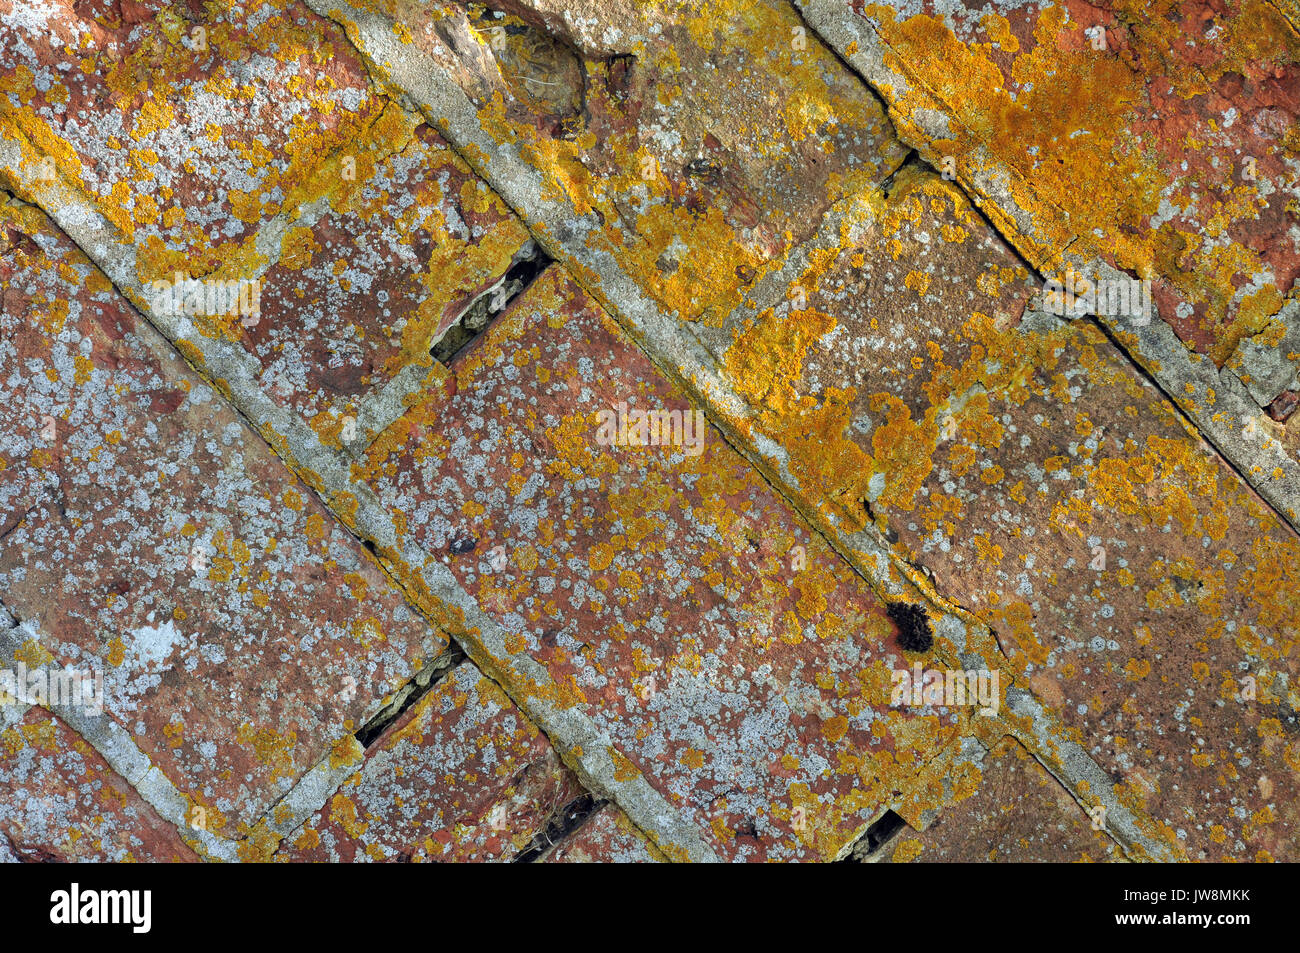 old lichen covered red brick wall with crumbling and missing mortar in the joints. old weather beaten brickwork. - Stock Image